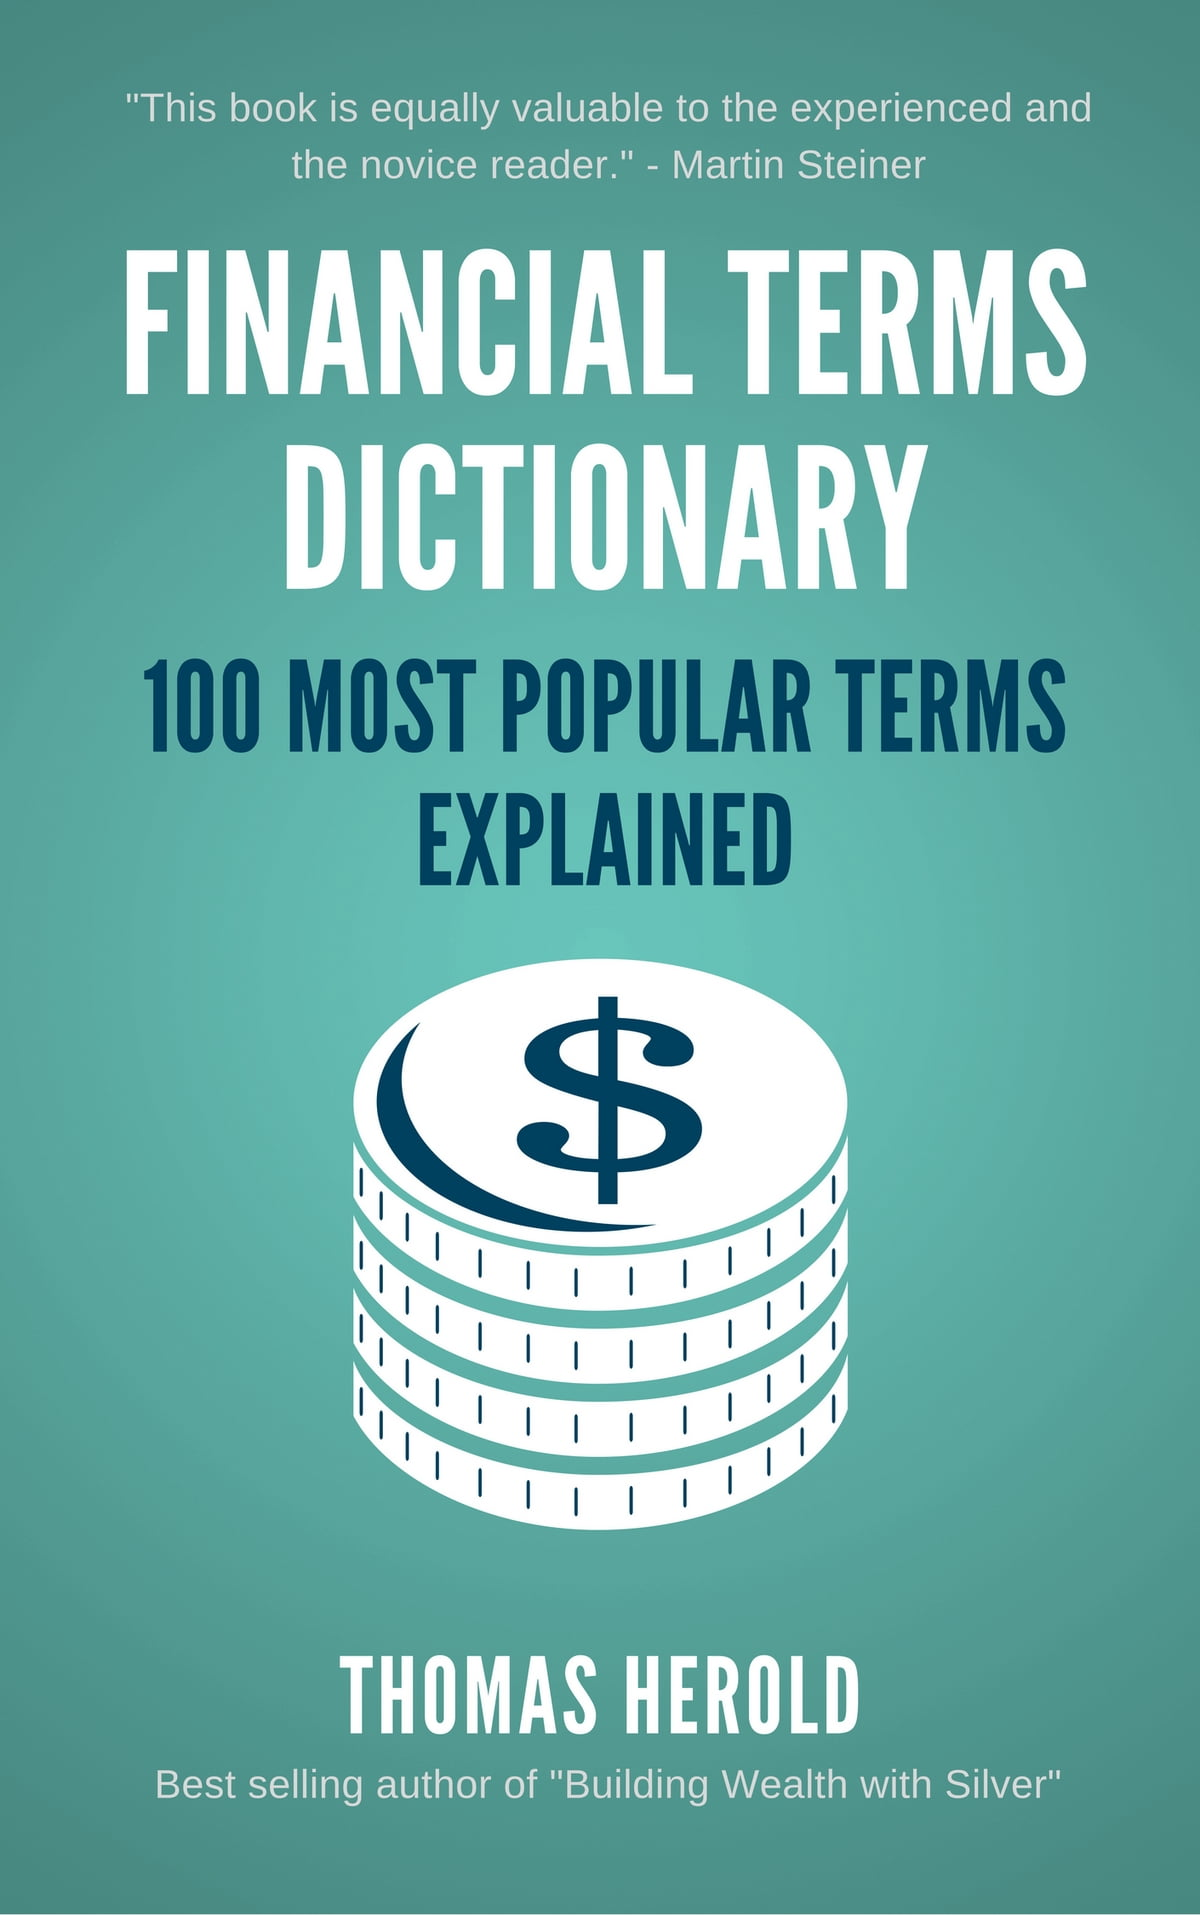 Financial Dictionary - The 100 Most Popular Financial Terms